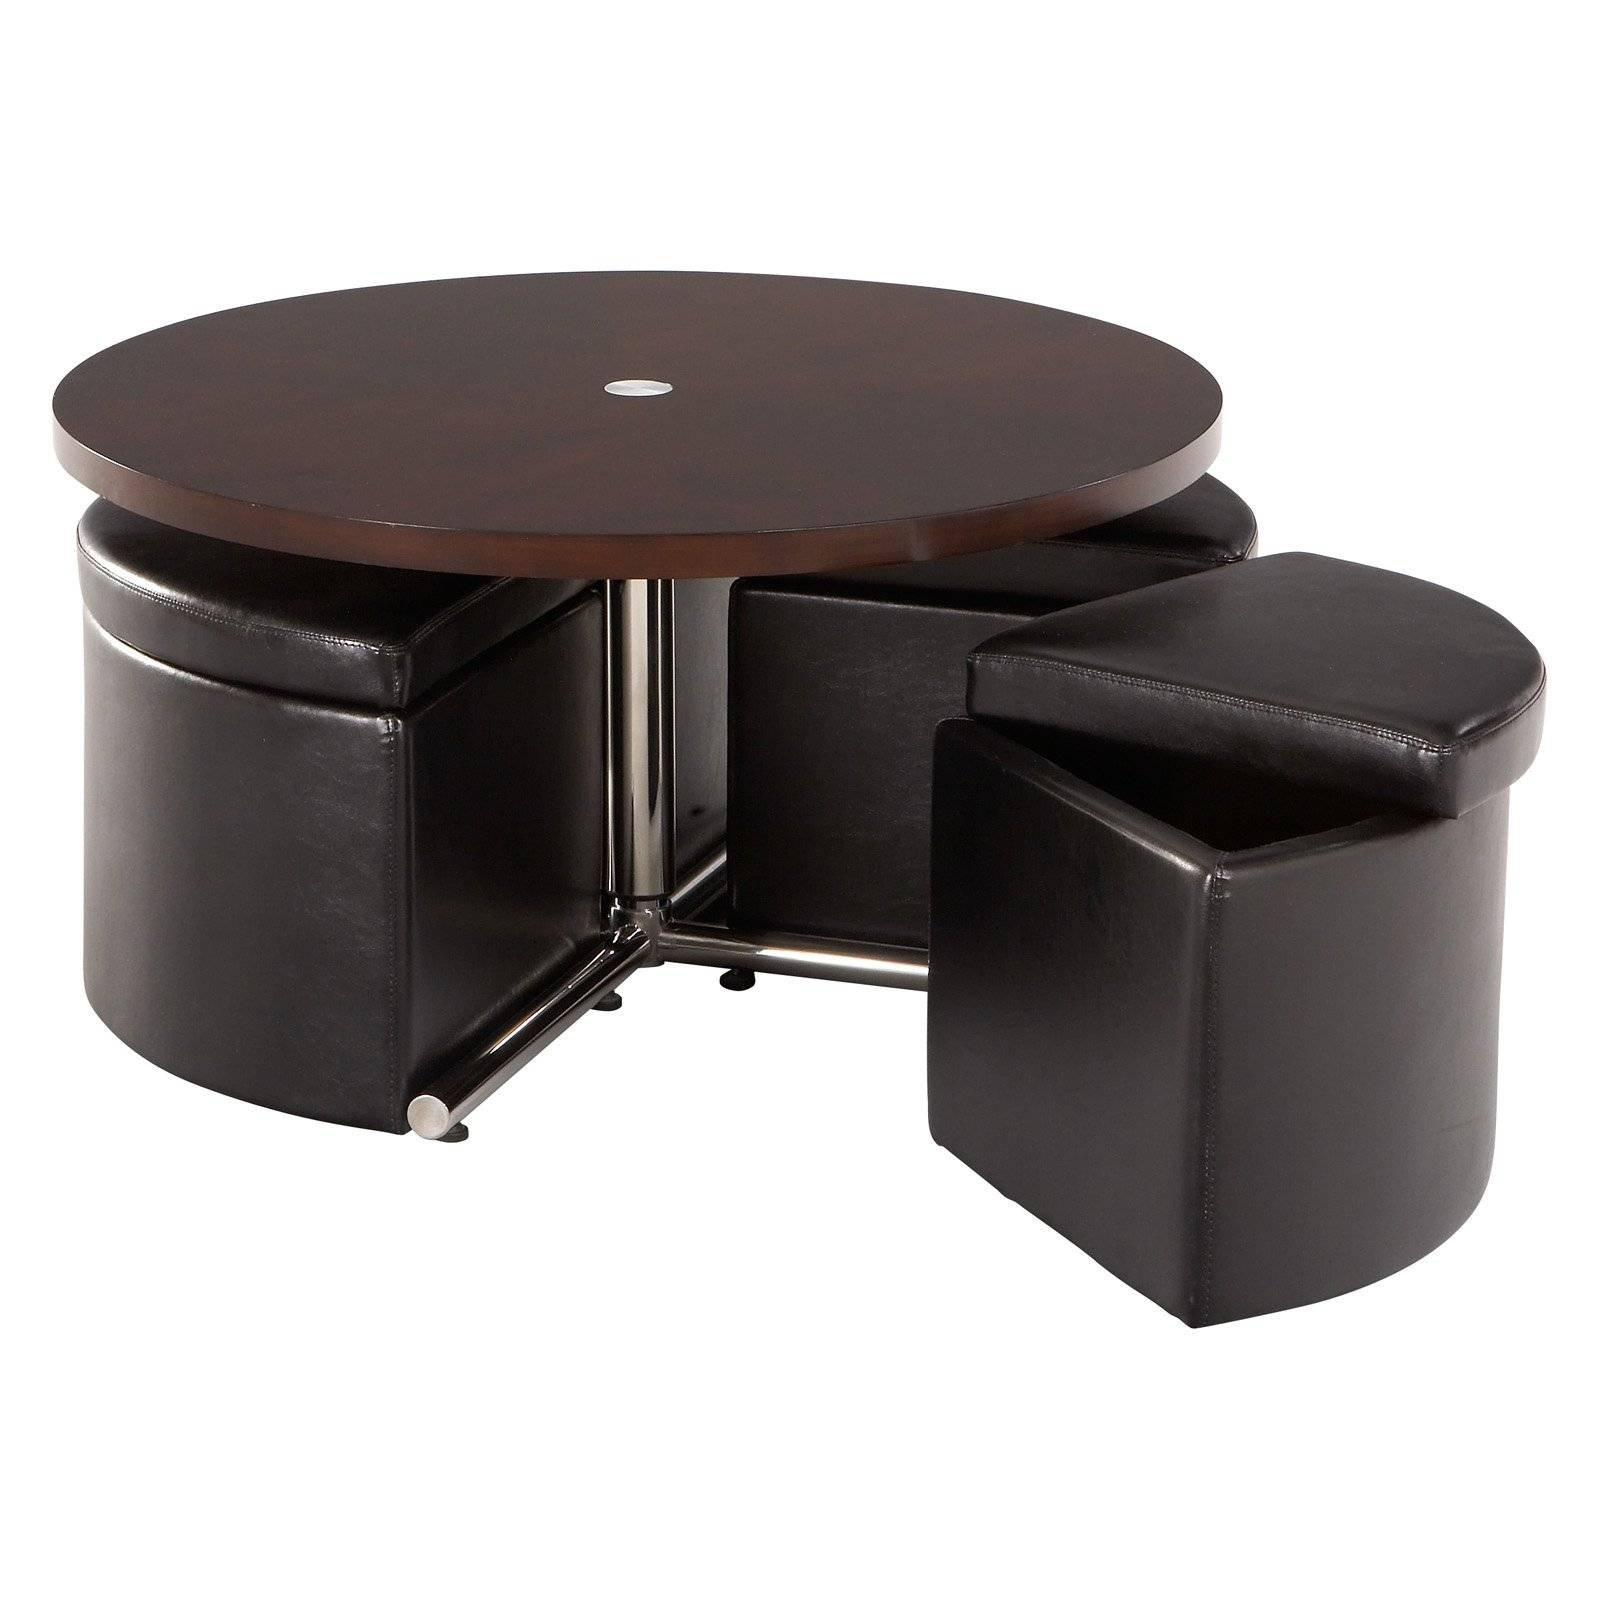 Round Coffee Table With 4 Storage Ottomans | Coffee Tables Decoration in Coffee Tables With Basket Storage Underneath (Image 25 of 30)